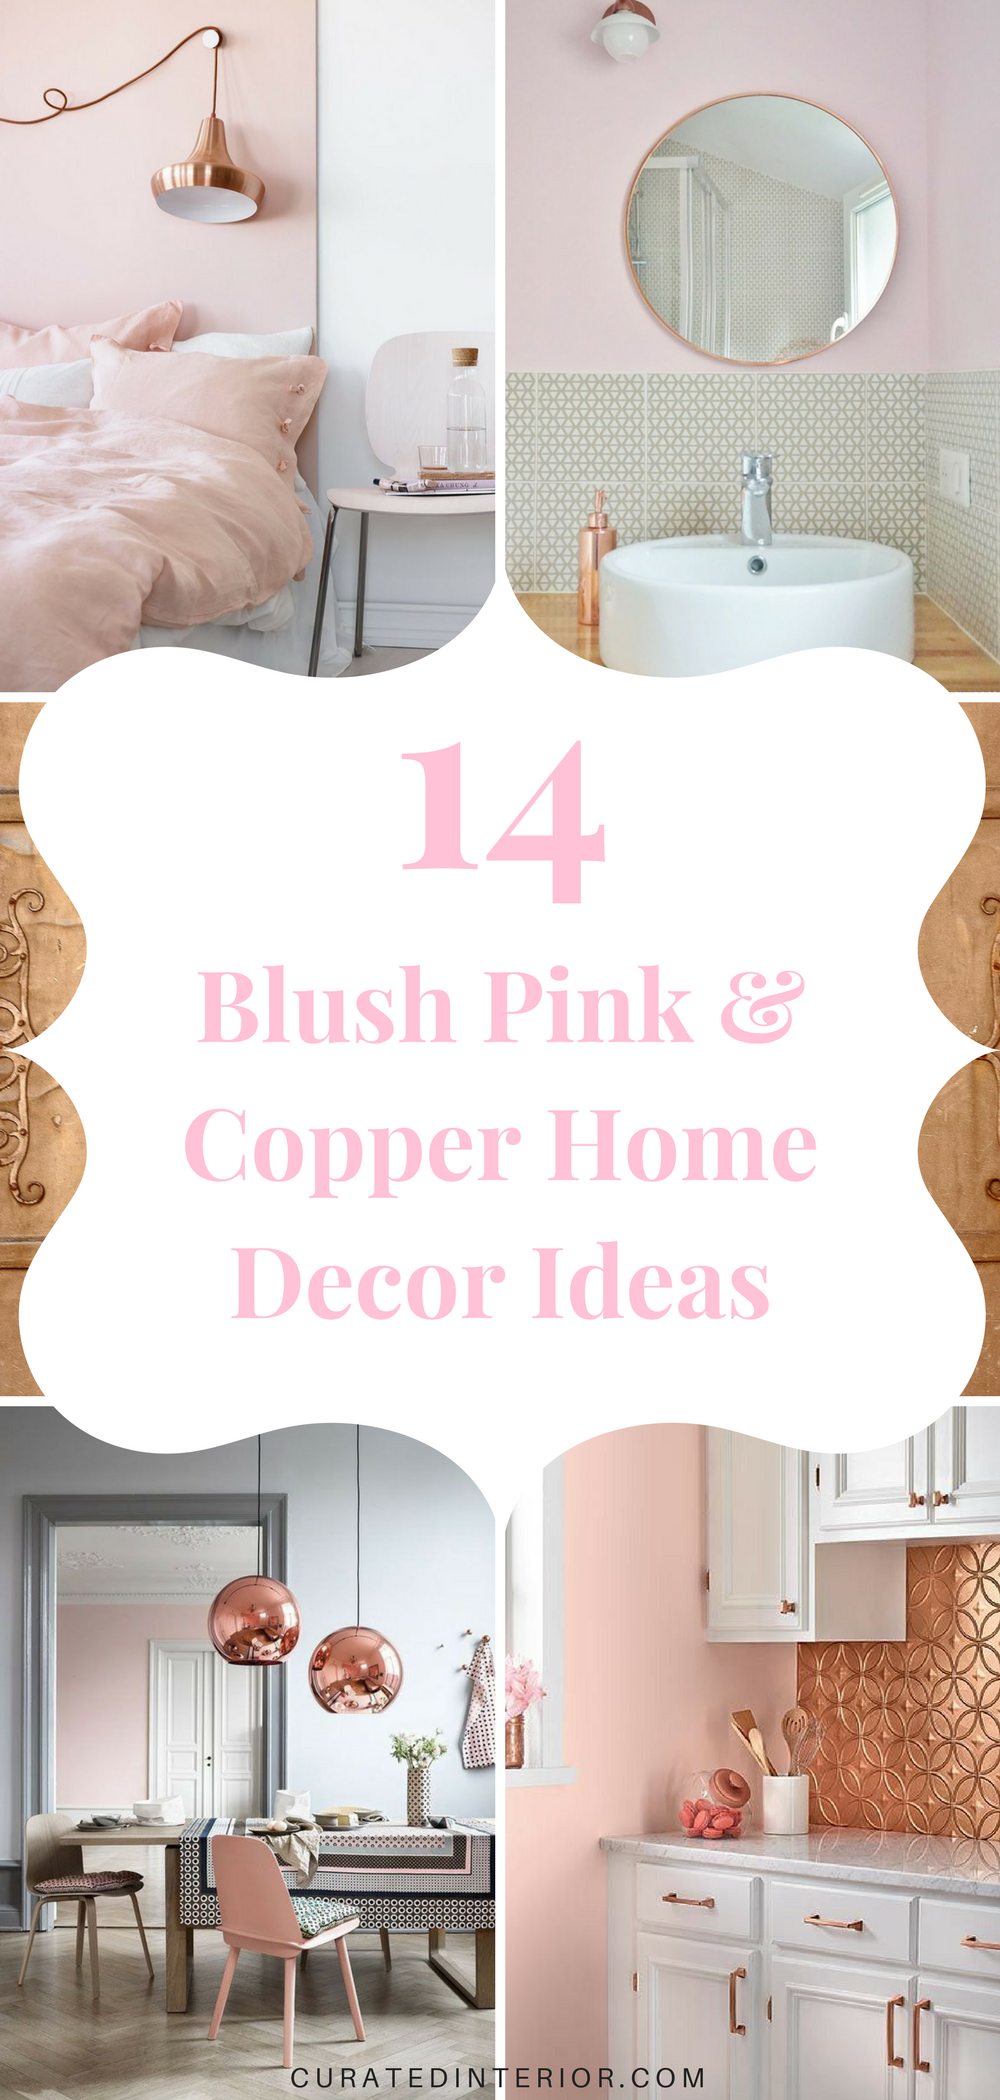 14 Eye Catching Blush Pink Copper Home Decor Ideas Pink Home Decor Home Decor Home Decor Accessories